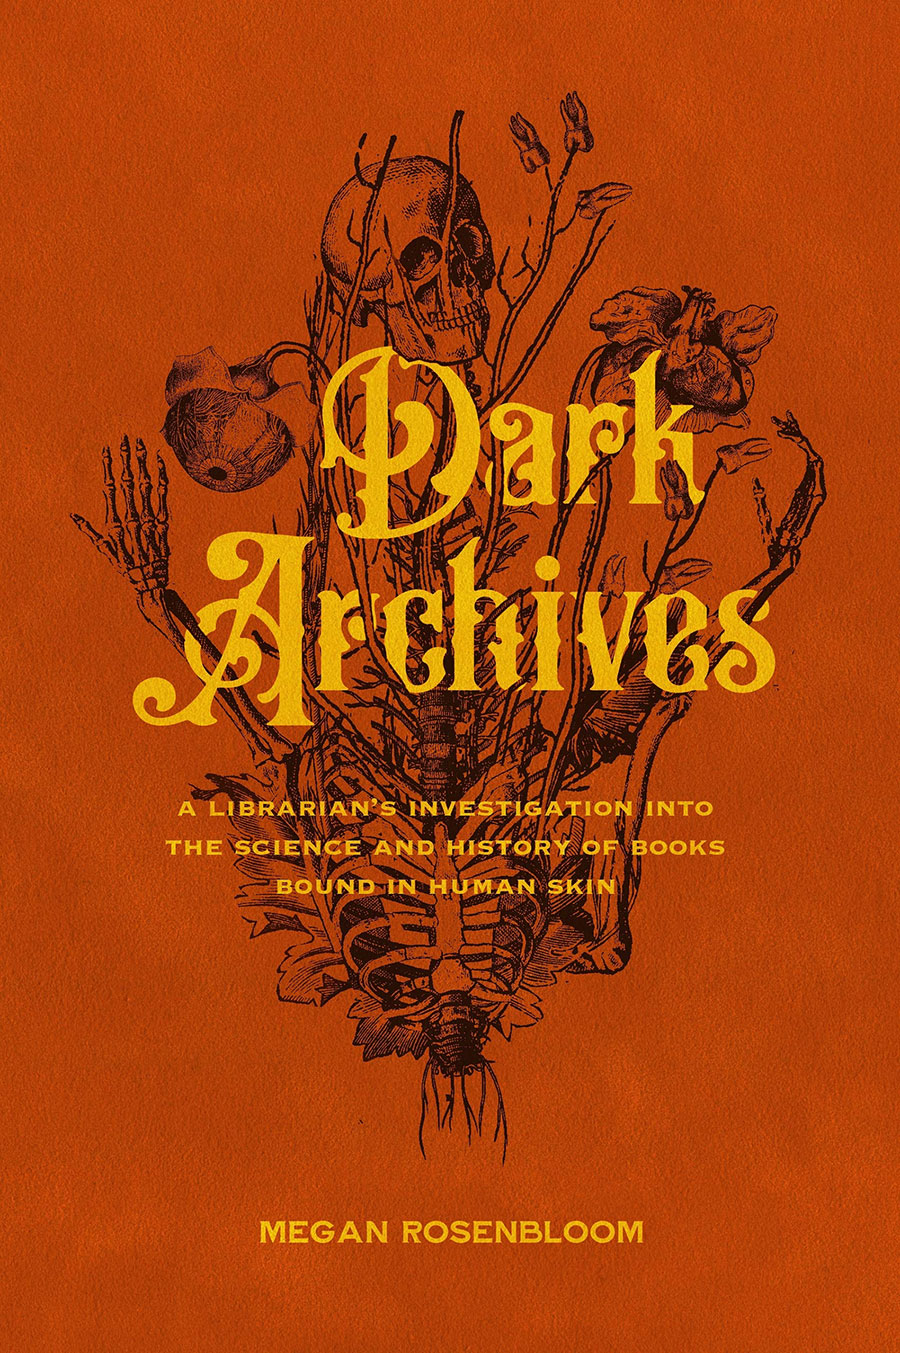 Dark Archives by Megan Rosenbloom